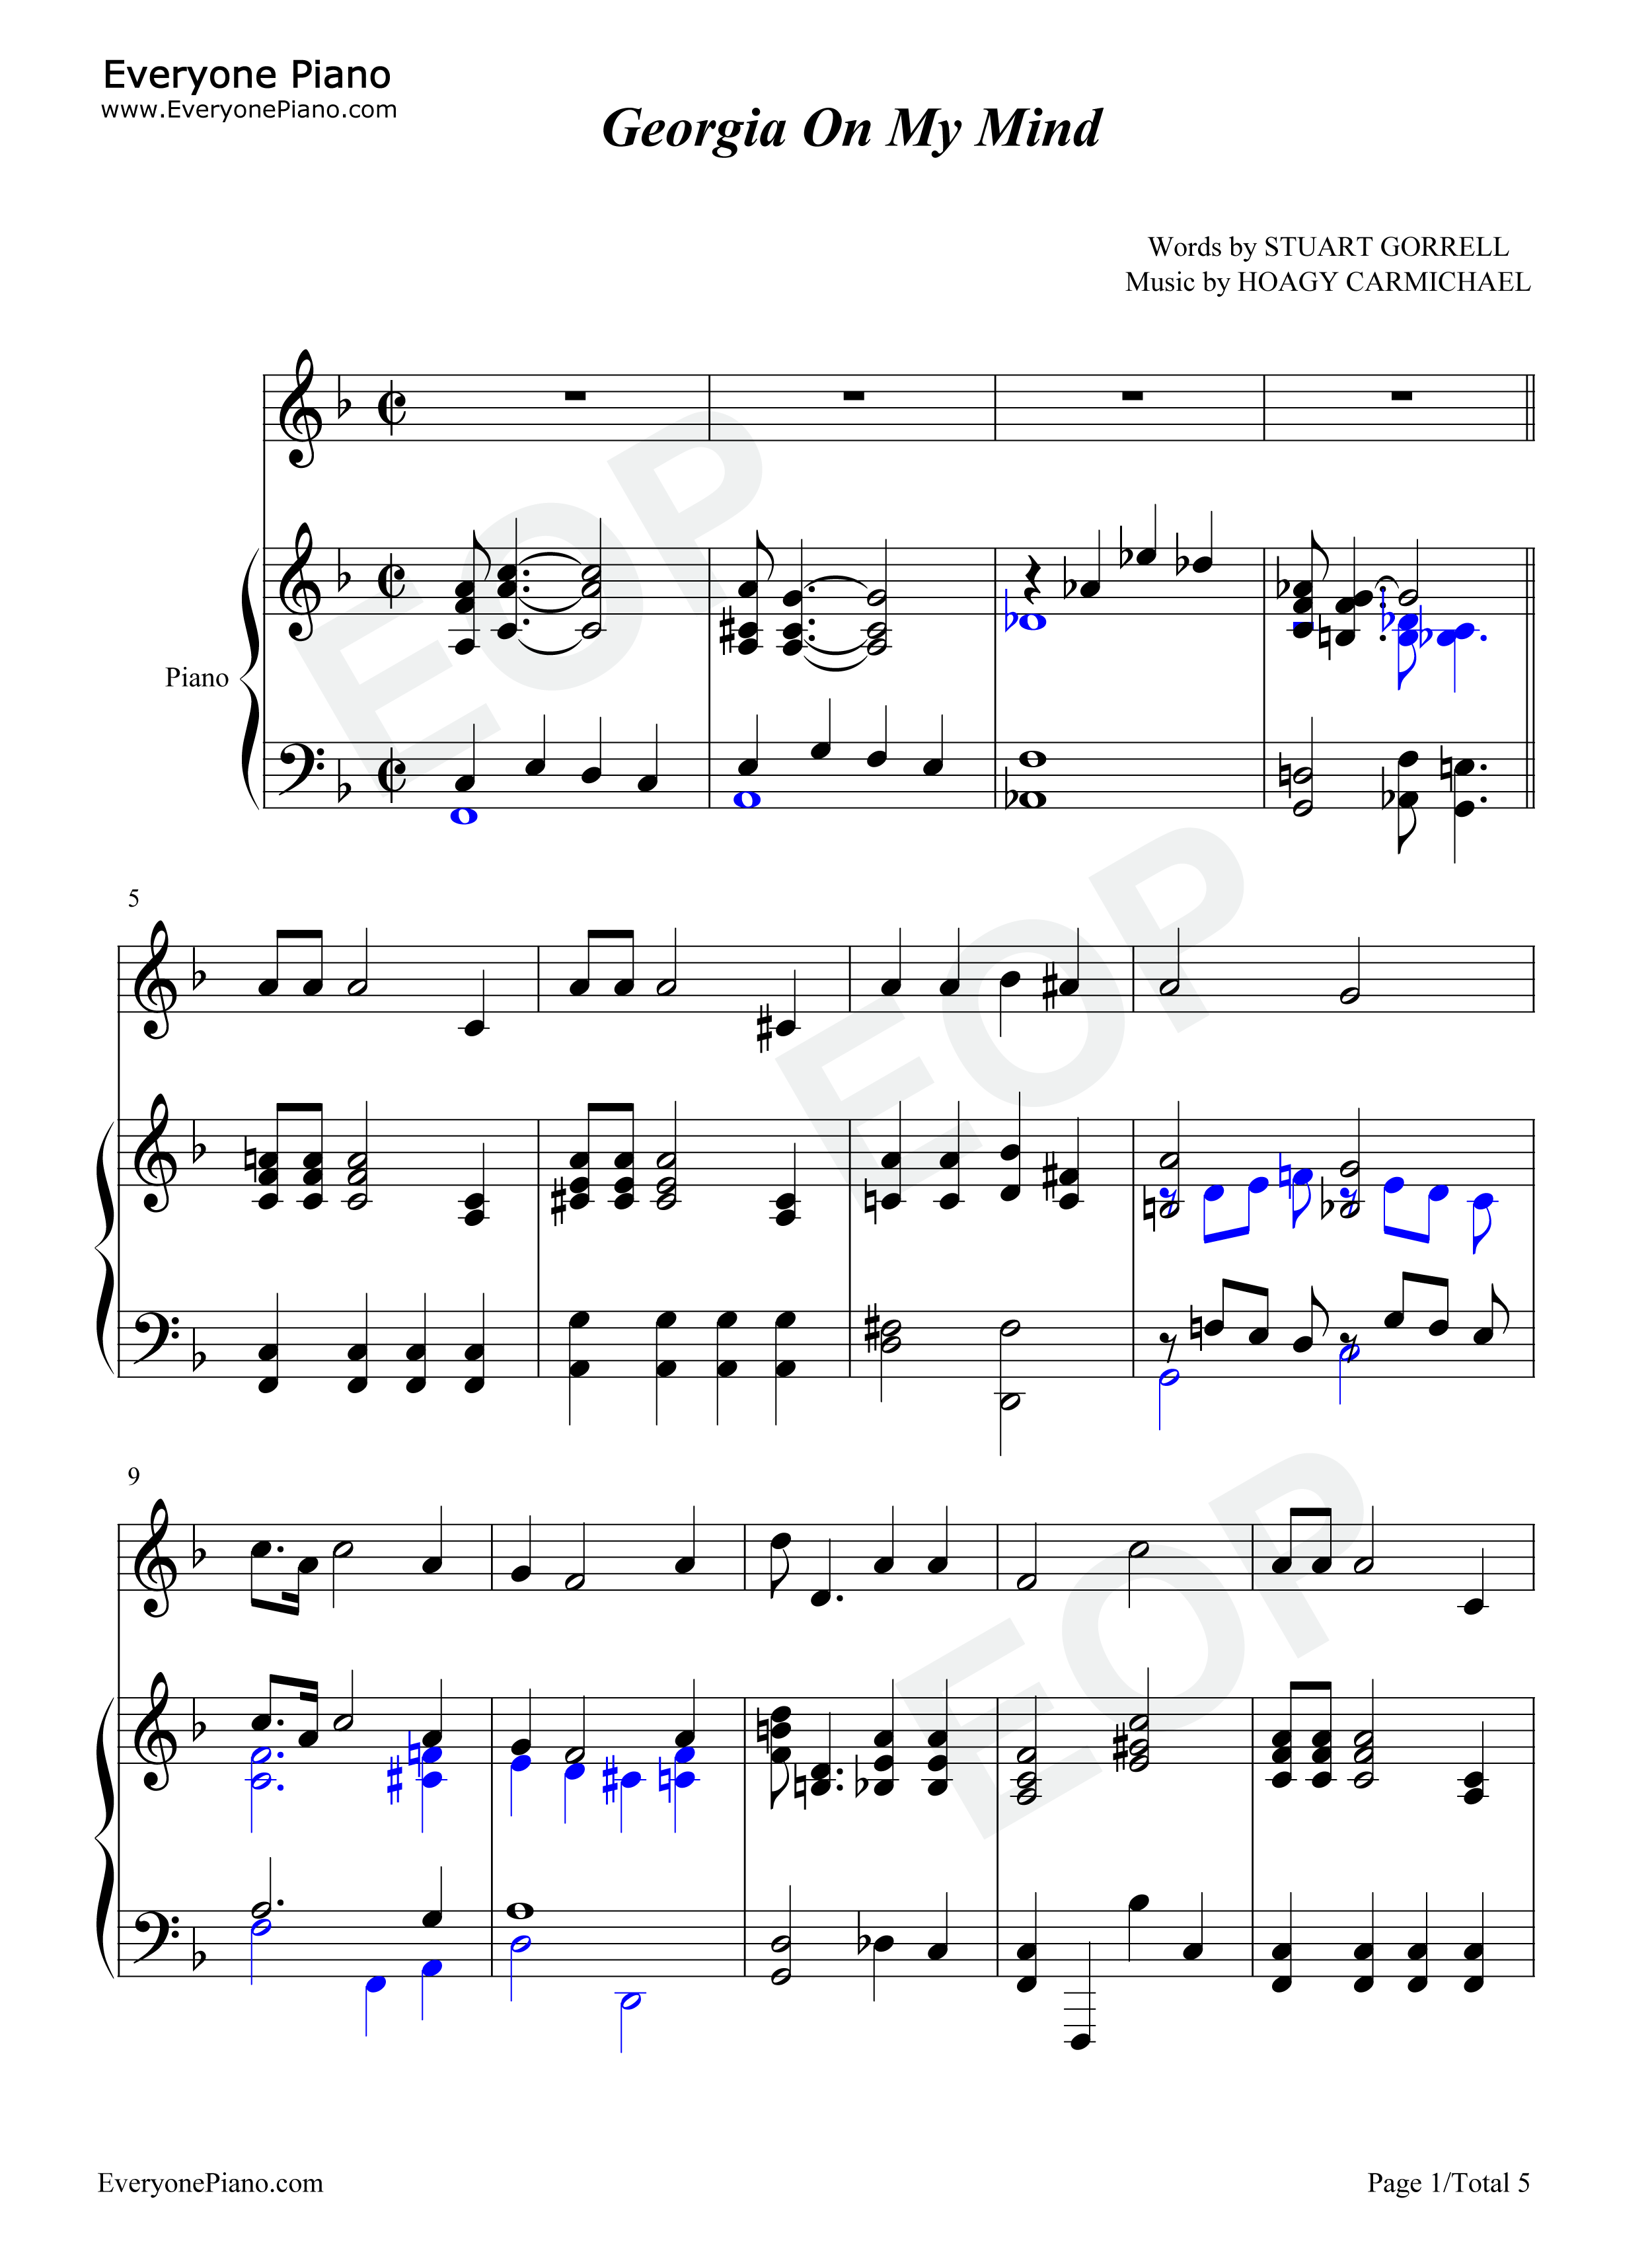 Georgia on my mind ray charles stave preview 1 free piano sheet listen now print sheet georgia on my mind ray charles stave preview 1 hexwebz Image collections